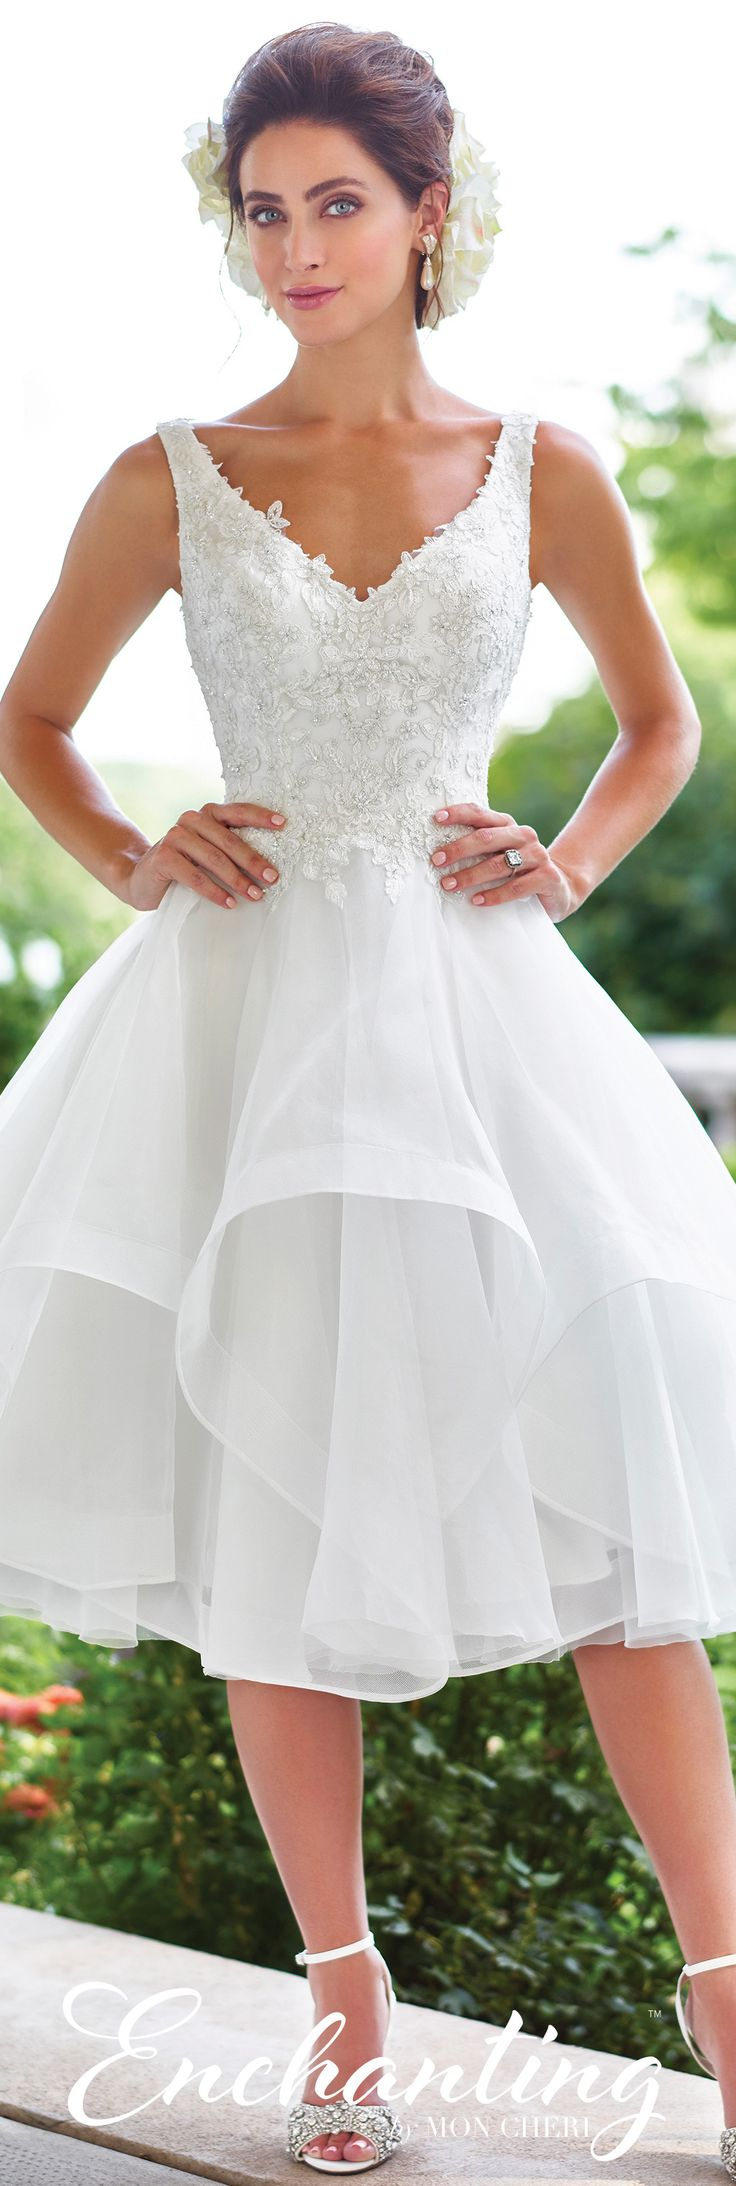 Best 25 Short wedding gowns ideas on Pinterest  Short